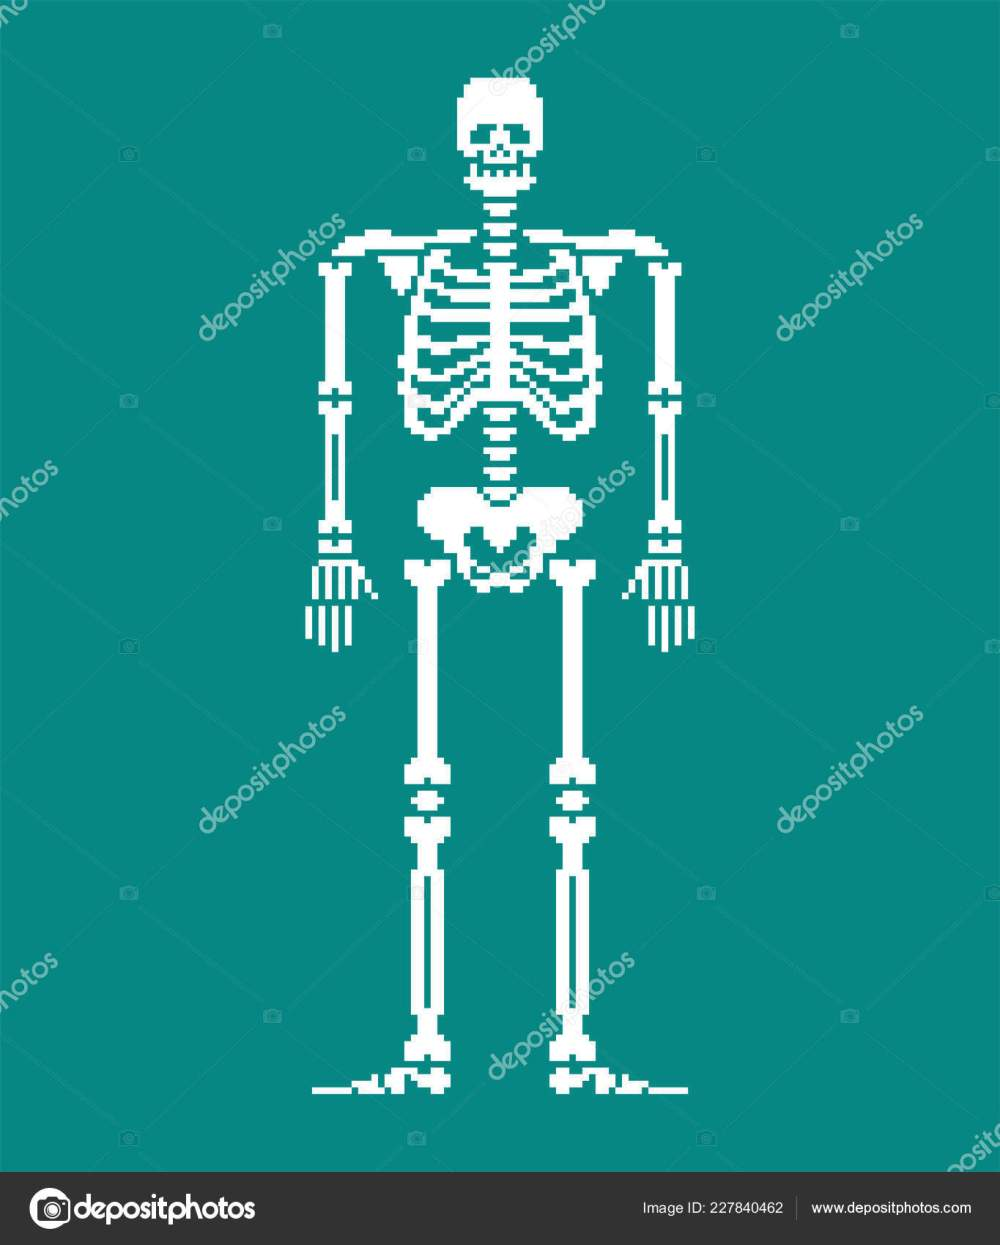 medium resolution of skull and bones anatomy 8 bit pixelate pelvic bone and ribs spine and vertebrae human bone system 16bit old game computer graphics style vector by